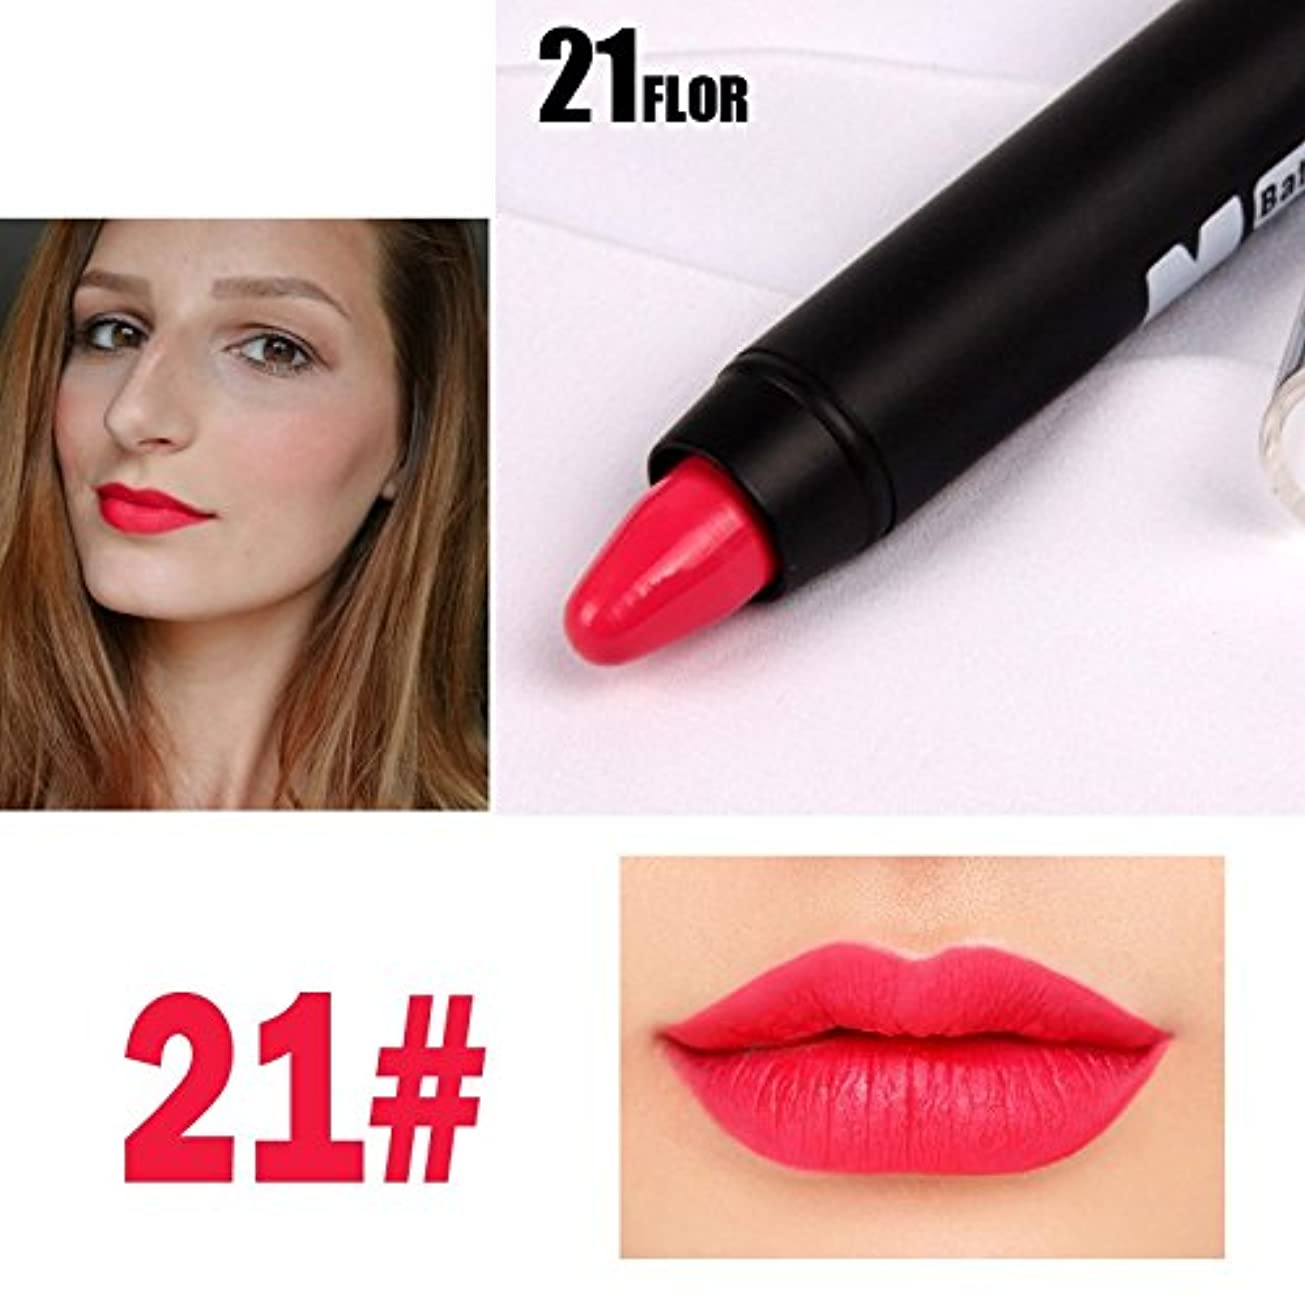 強度エーカー憲法MISS ROSE Professional Women Waterproof Lipstick Lips Cream Beauty Lote Batom Matte Lipstick Nude Pencils Makeup